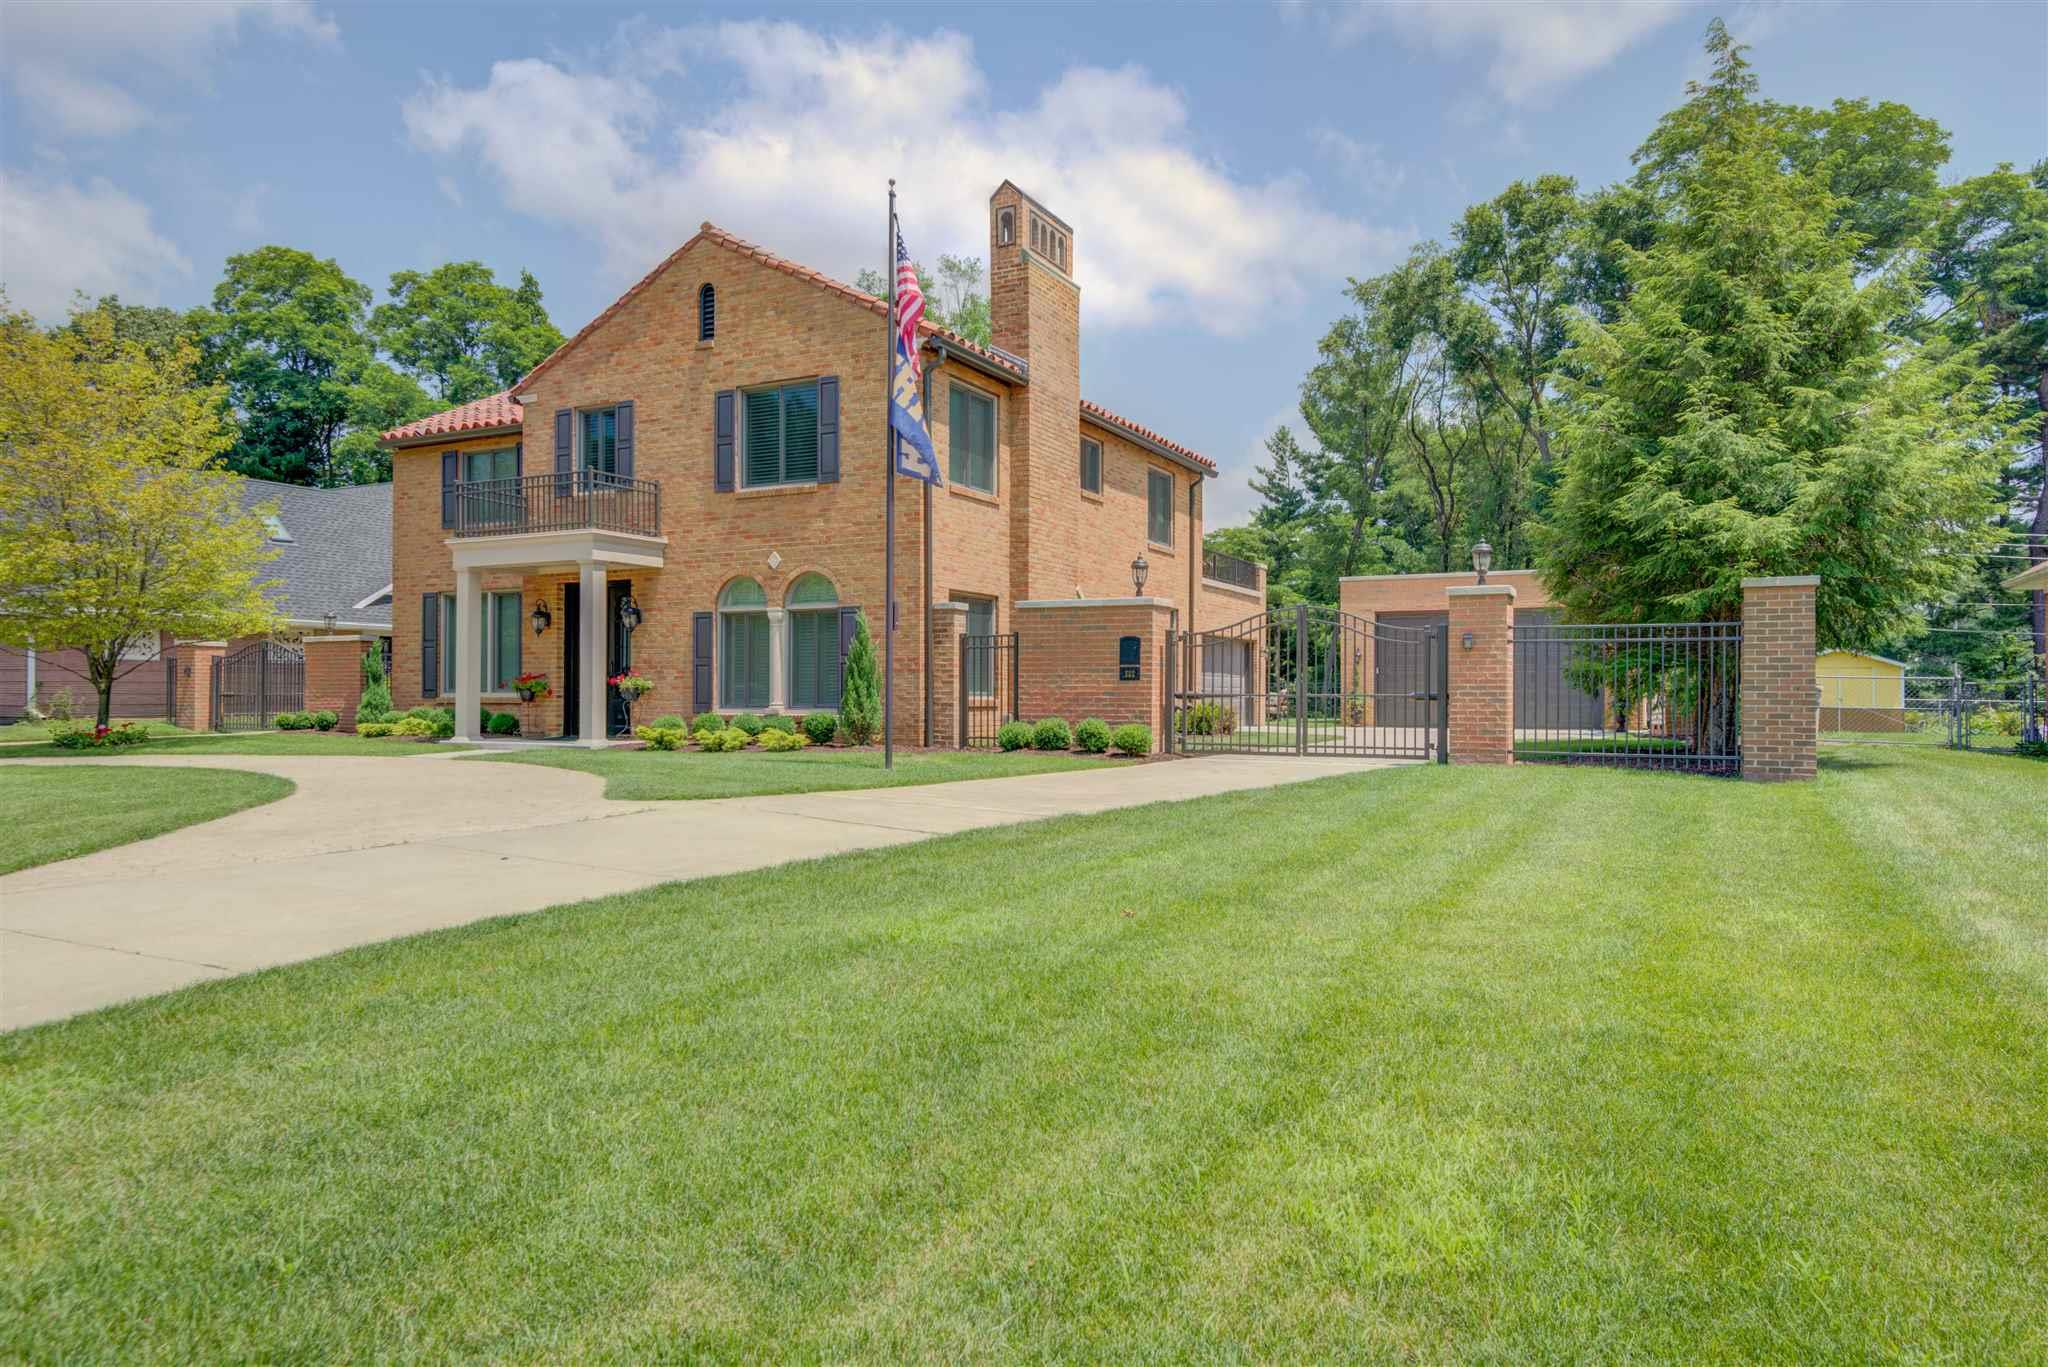 502 N Ironwood South Bend, IN 46615